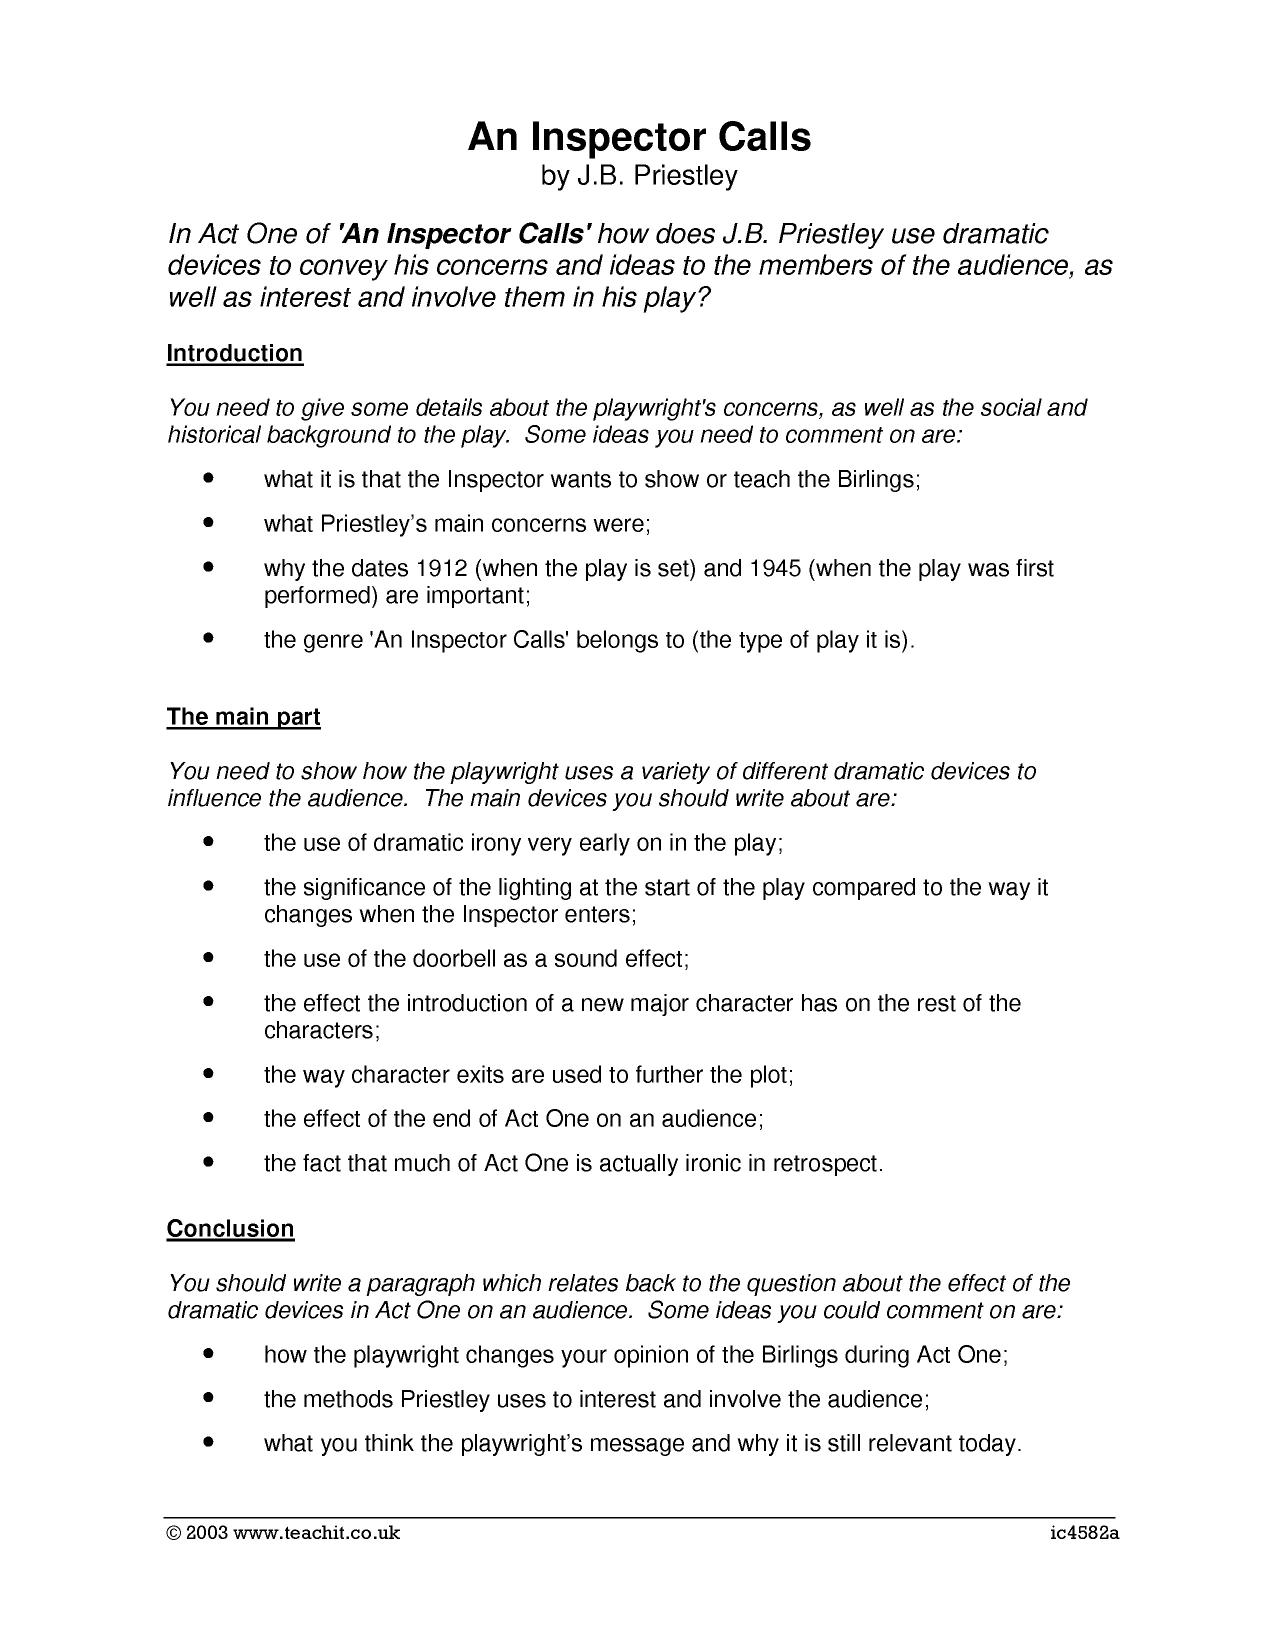 Essay Guide Dramatic Devices In Act 1